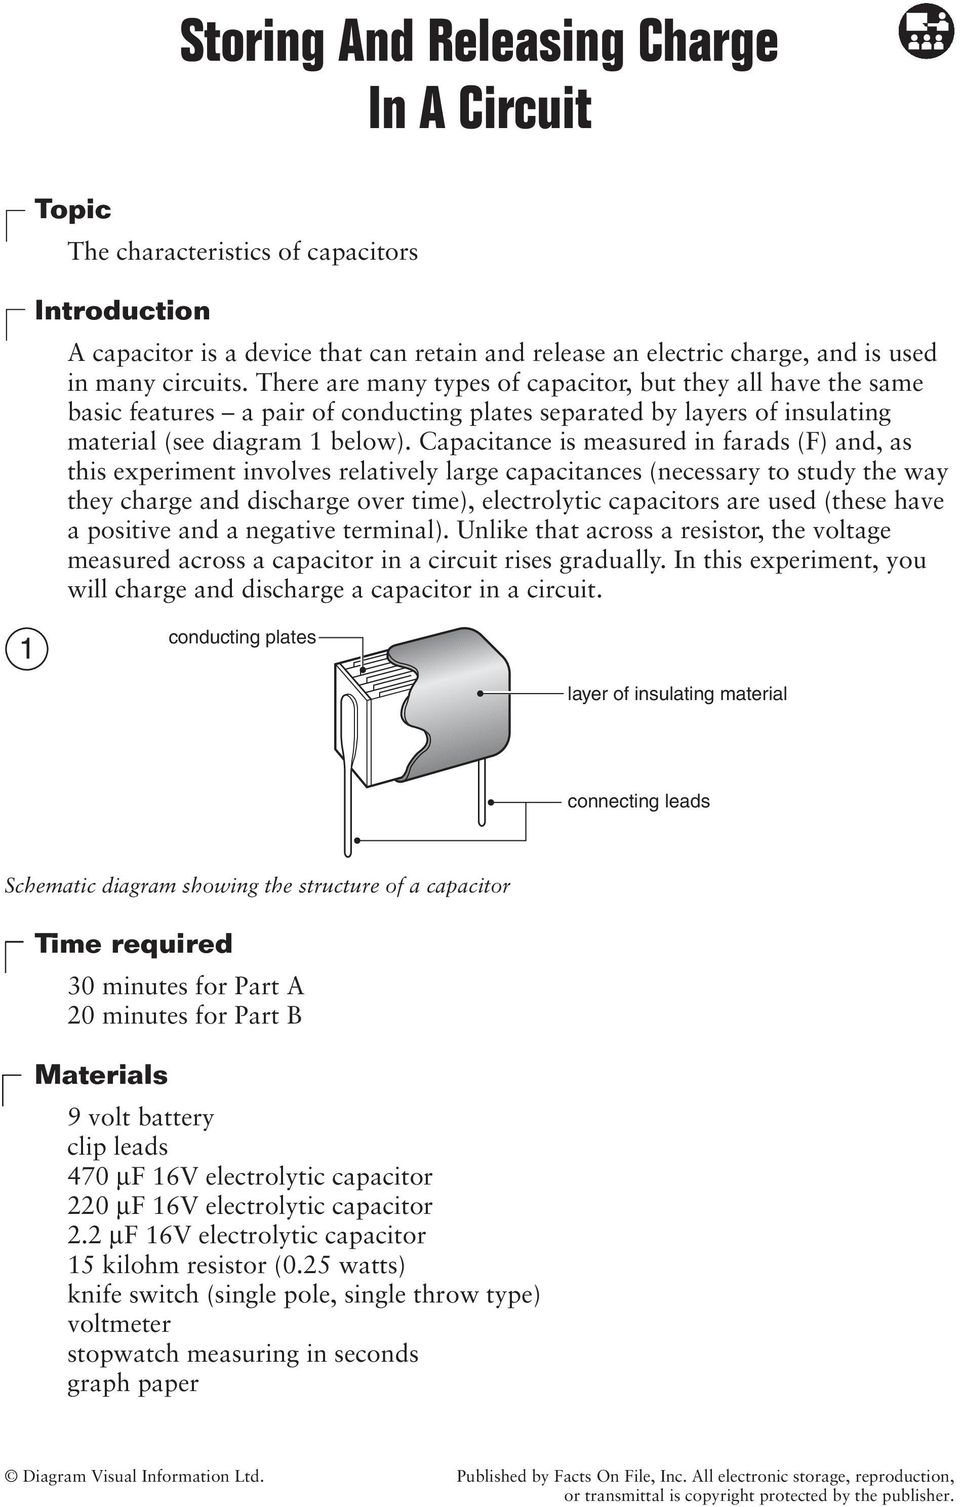 Capacitance is measured in farads (F) and, as this experiment involves relatively large capacitances (necessary to study the way they charge and discharge over time), electrolytic capacitors are used